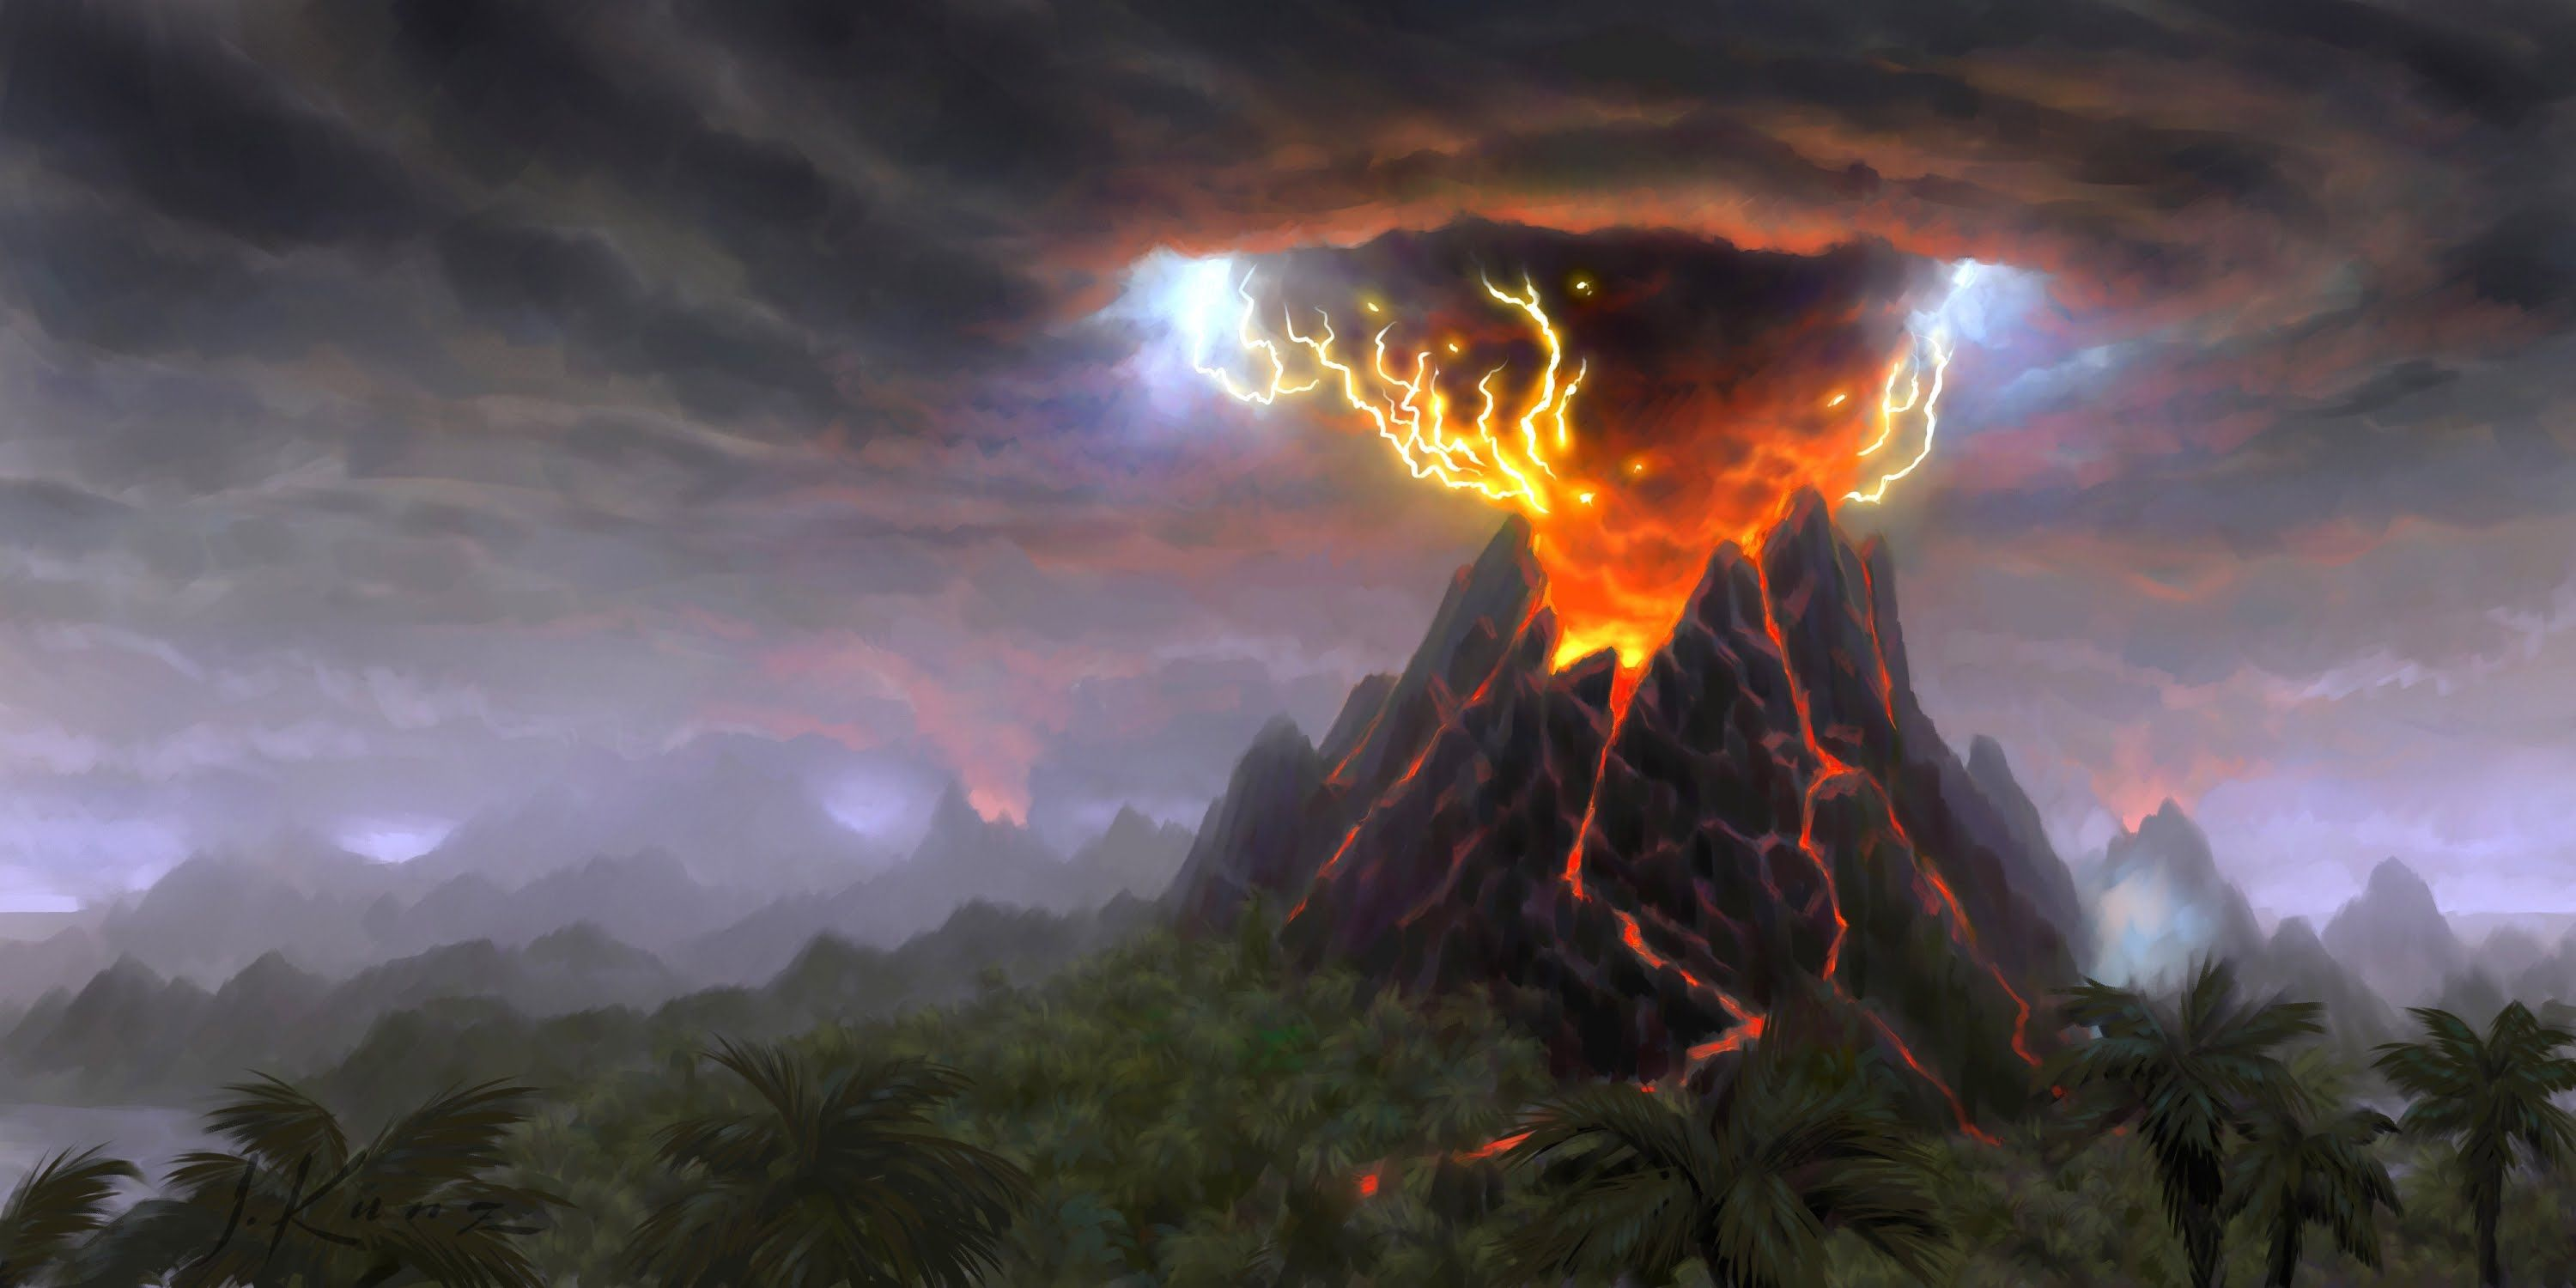 Top 10 Horrible Natural Disasters That Affected The World These Terrible Acts Of Nature That Were Caught On Came World Of Warcraft Cataclysm Art World Volcano